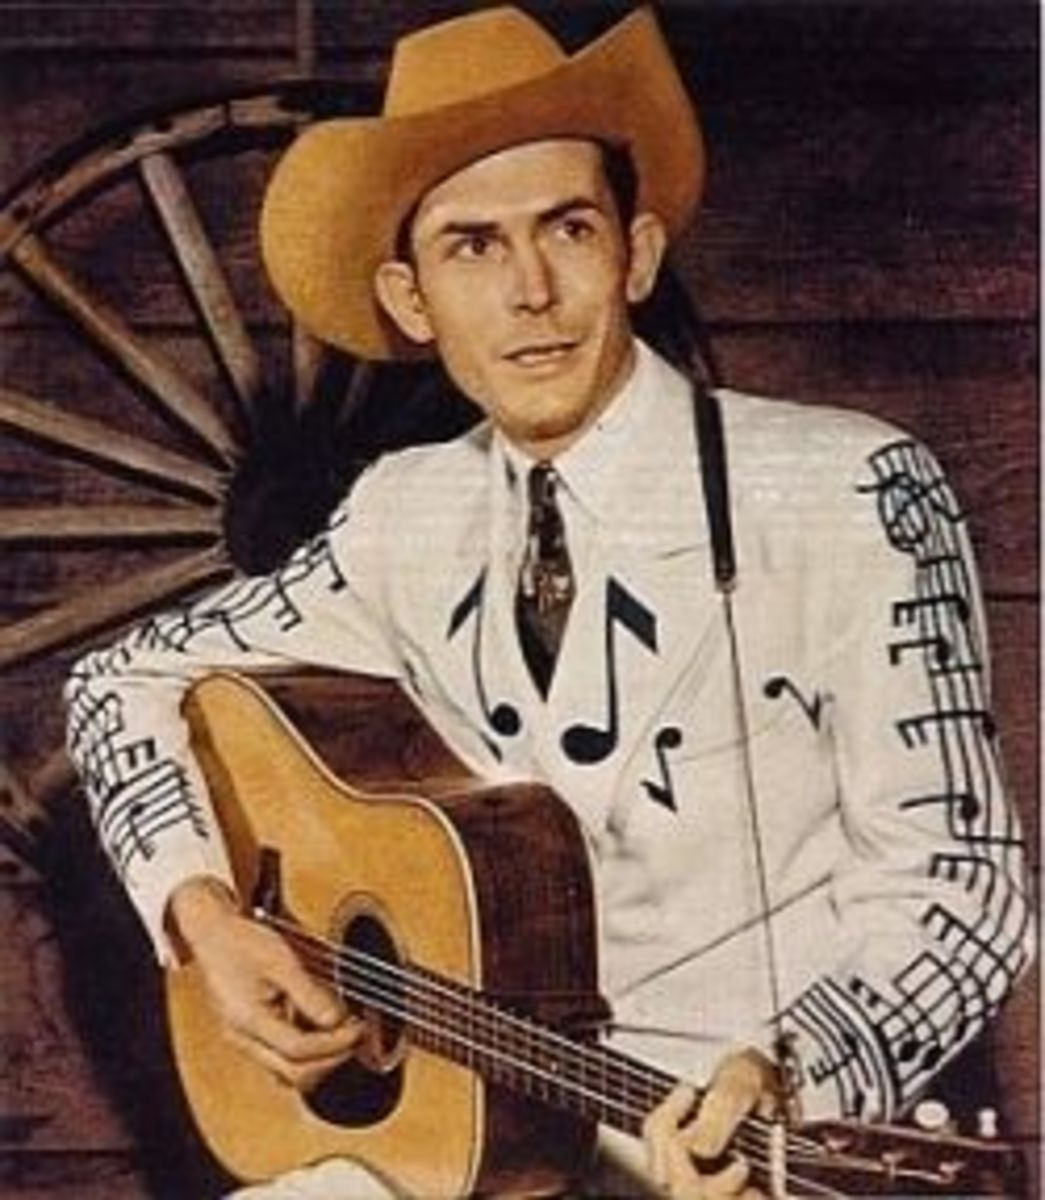 Hank Williams - Country Music Legend